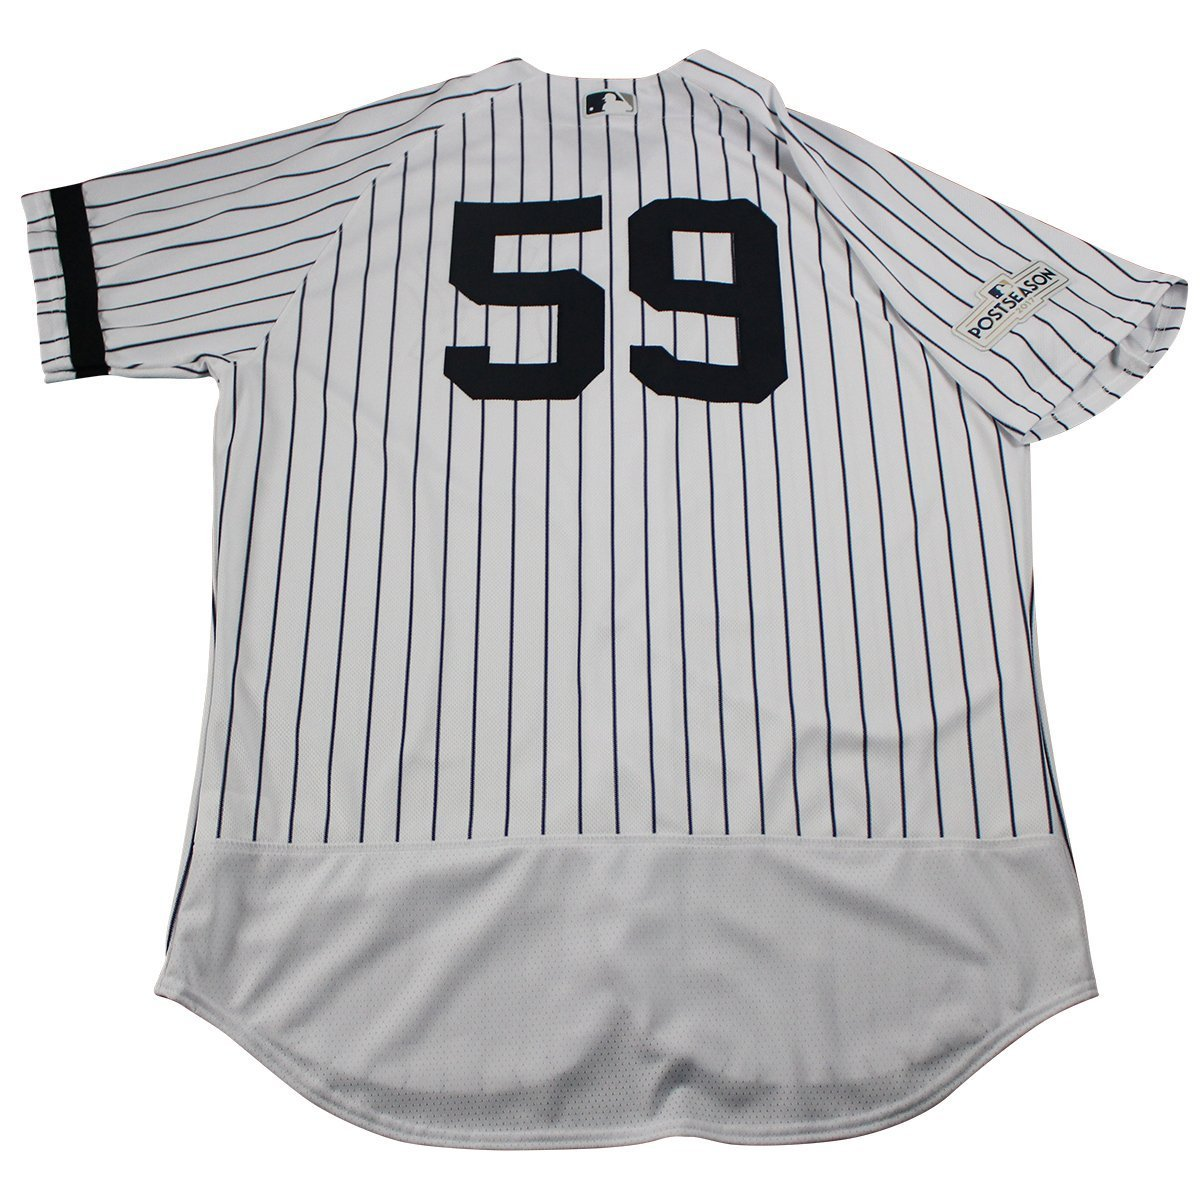 3b709d1bf Rob Thomson New York Yankees Game Used  59 Pinstripe Jersey (10 1 2017)(JC009696)  at Amazon s Sports Collectibles Store